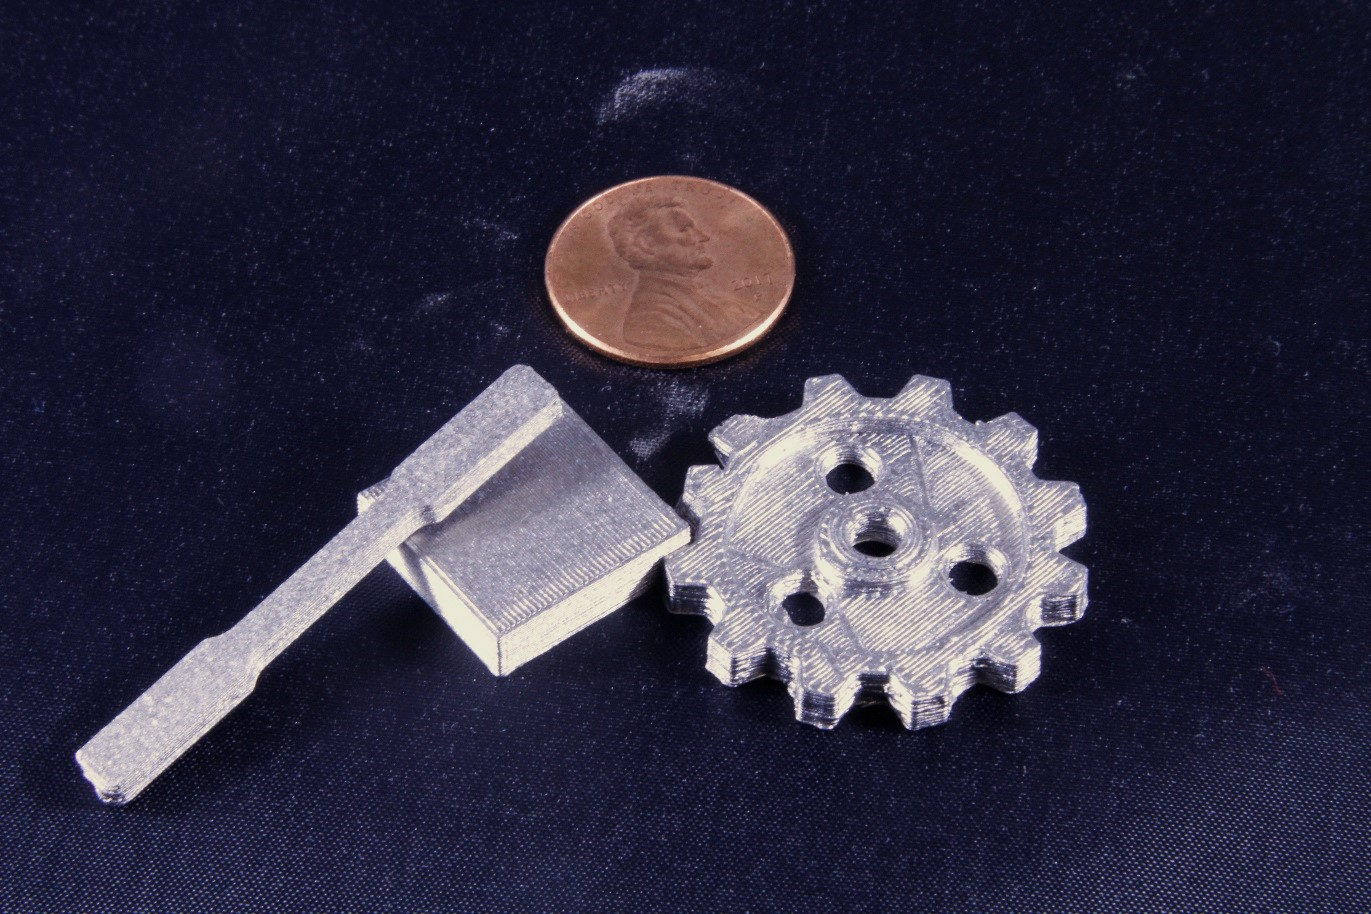 3D printed titanium gear, dogbone, and block [Image: nScrypt]